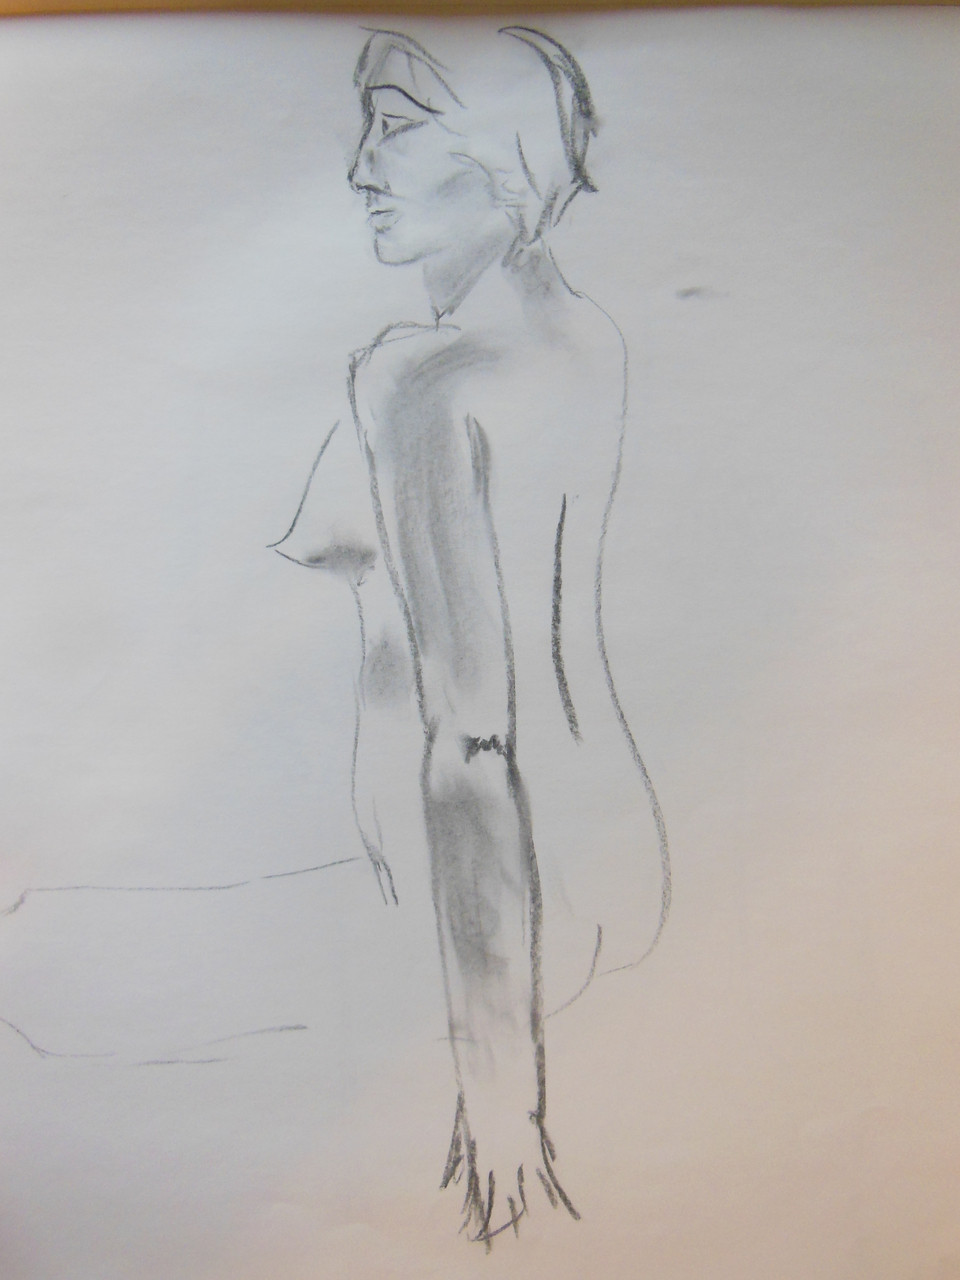 Unfinished Study. Pencil on paper # 6